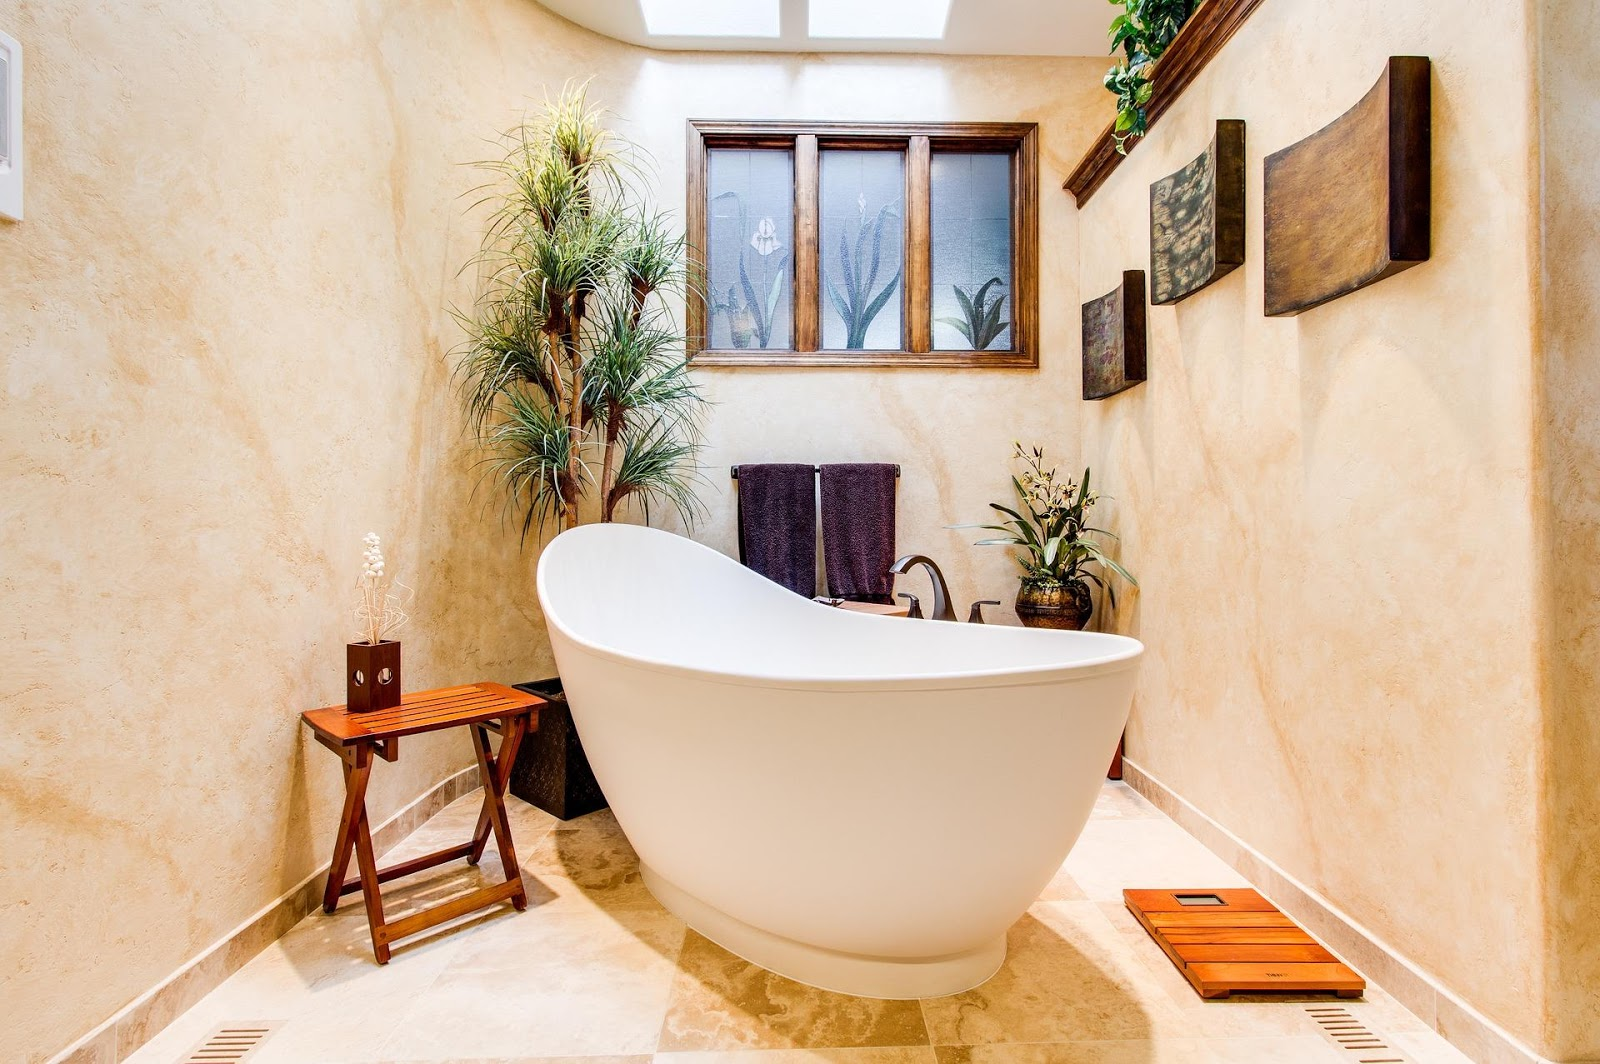 Helpful hacks for making bathroom of your dreams